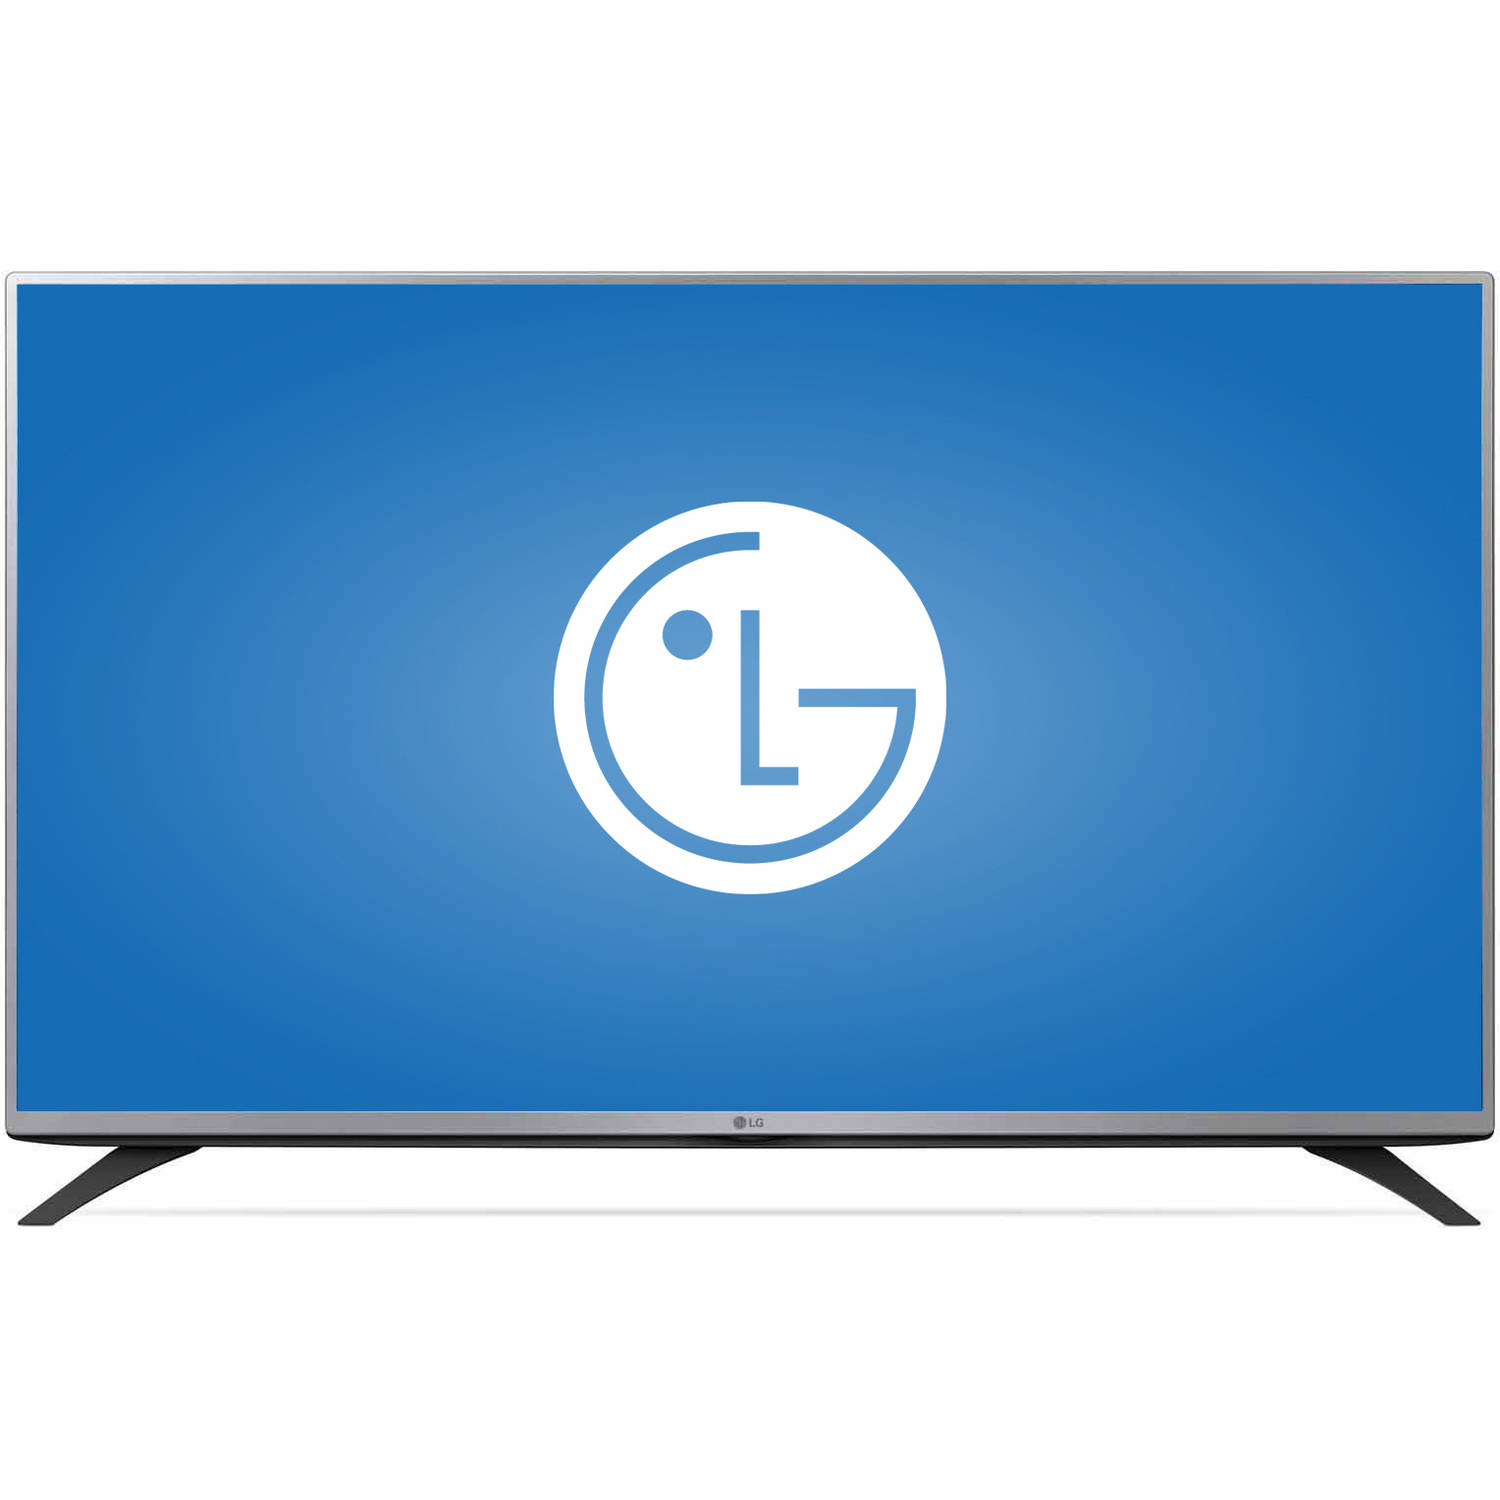 "Refurbished LG 43LF5400 43"" 1080p 60Hz Class LED HDTV"